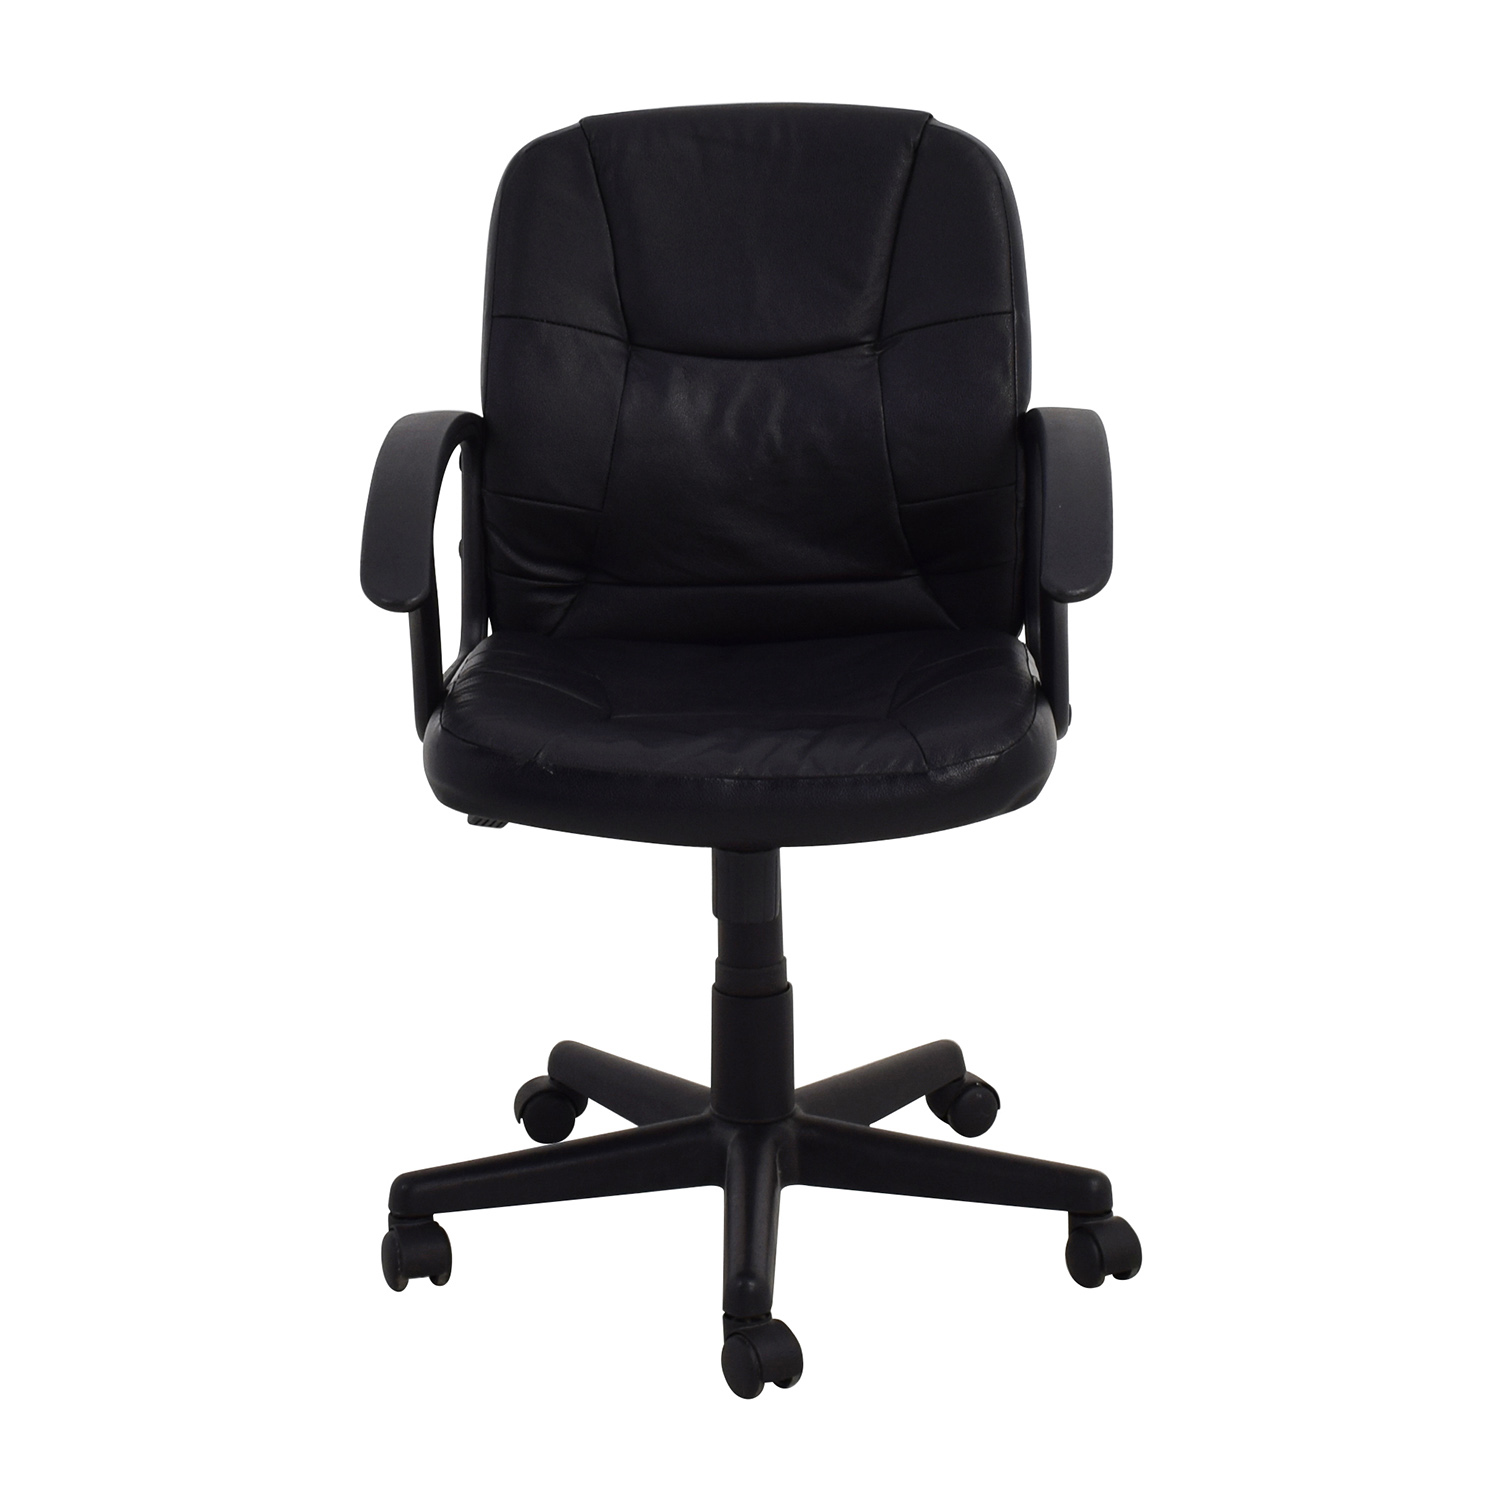 shop Black Leather Adjustable Desk Chair Home Office Chairs